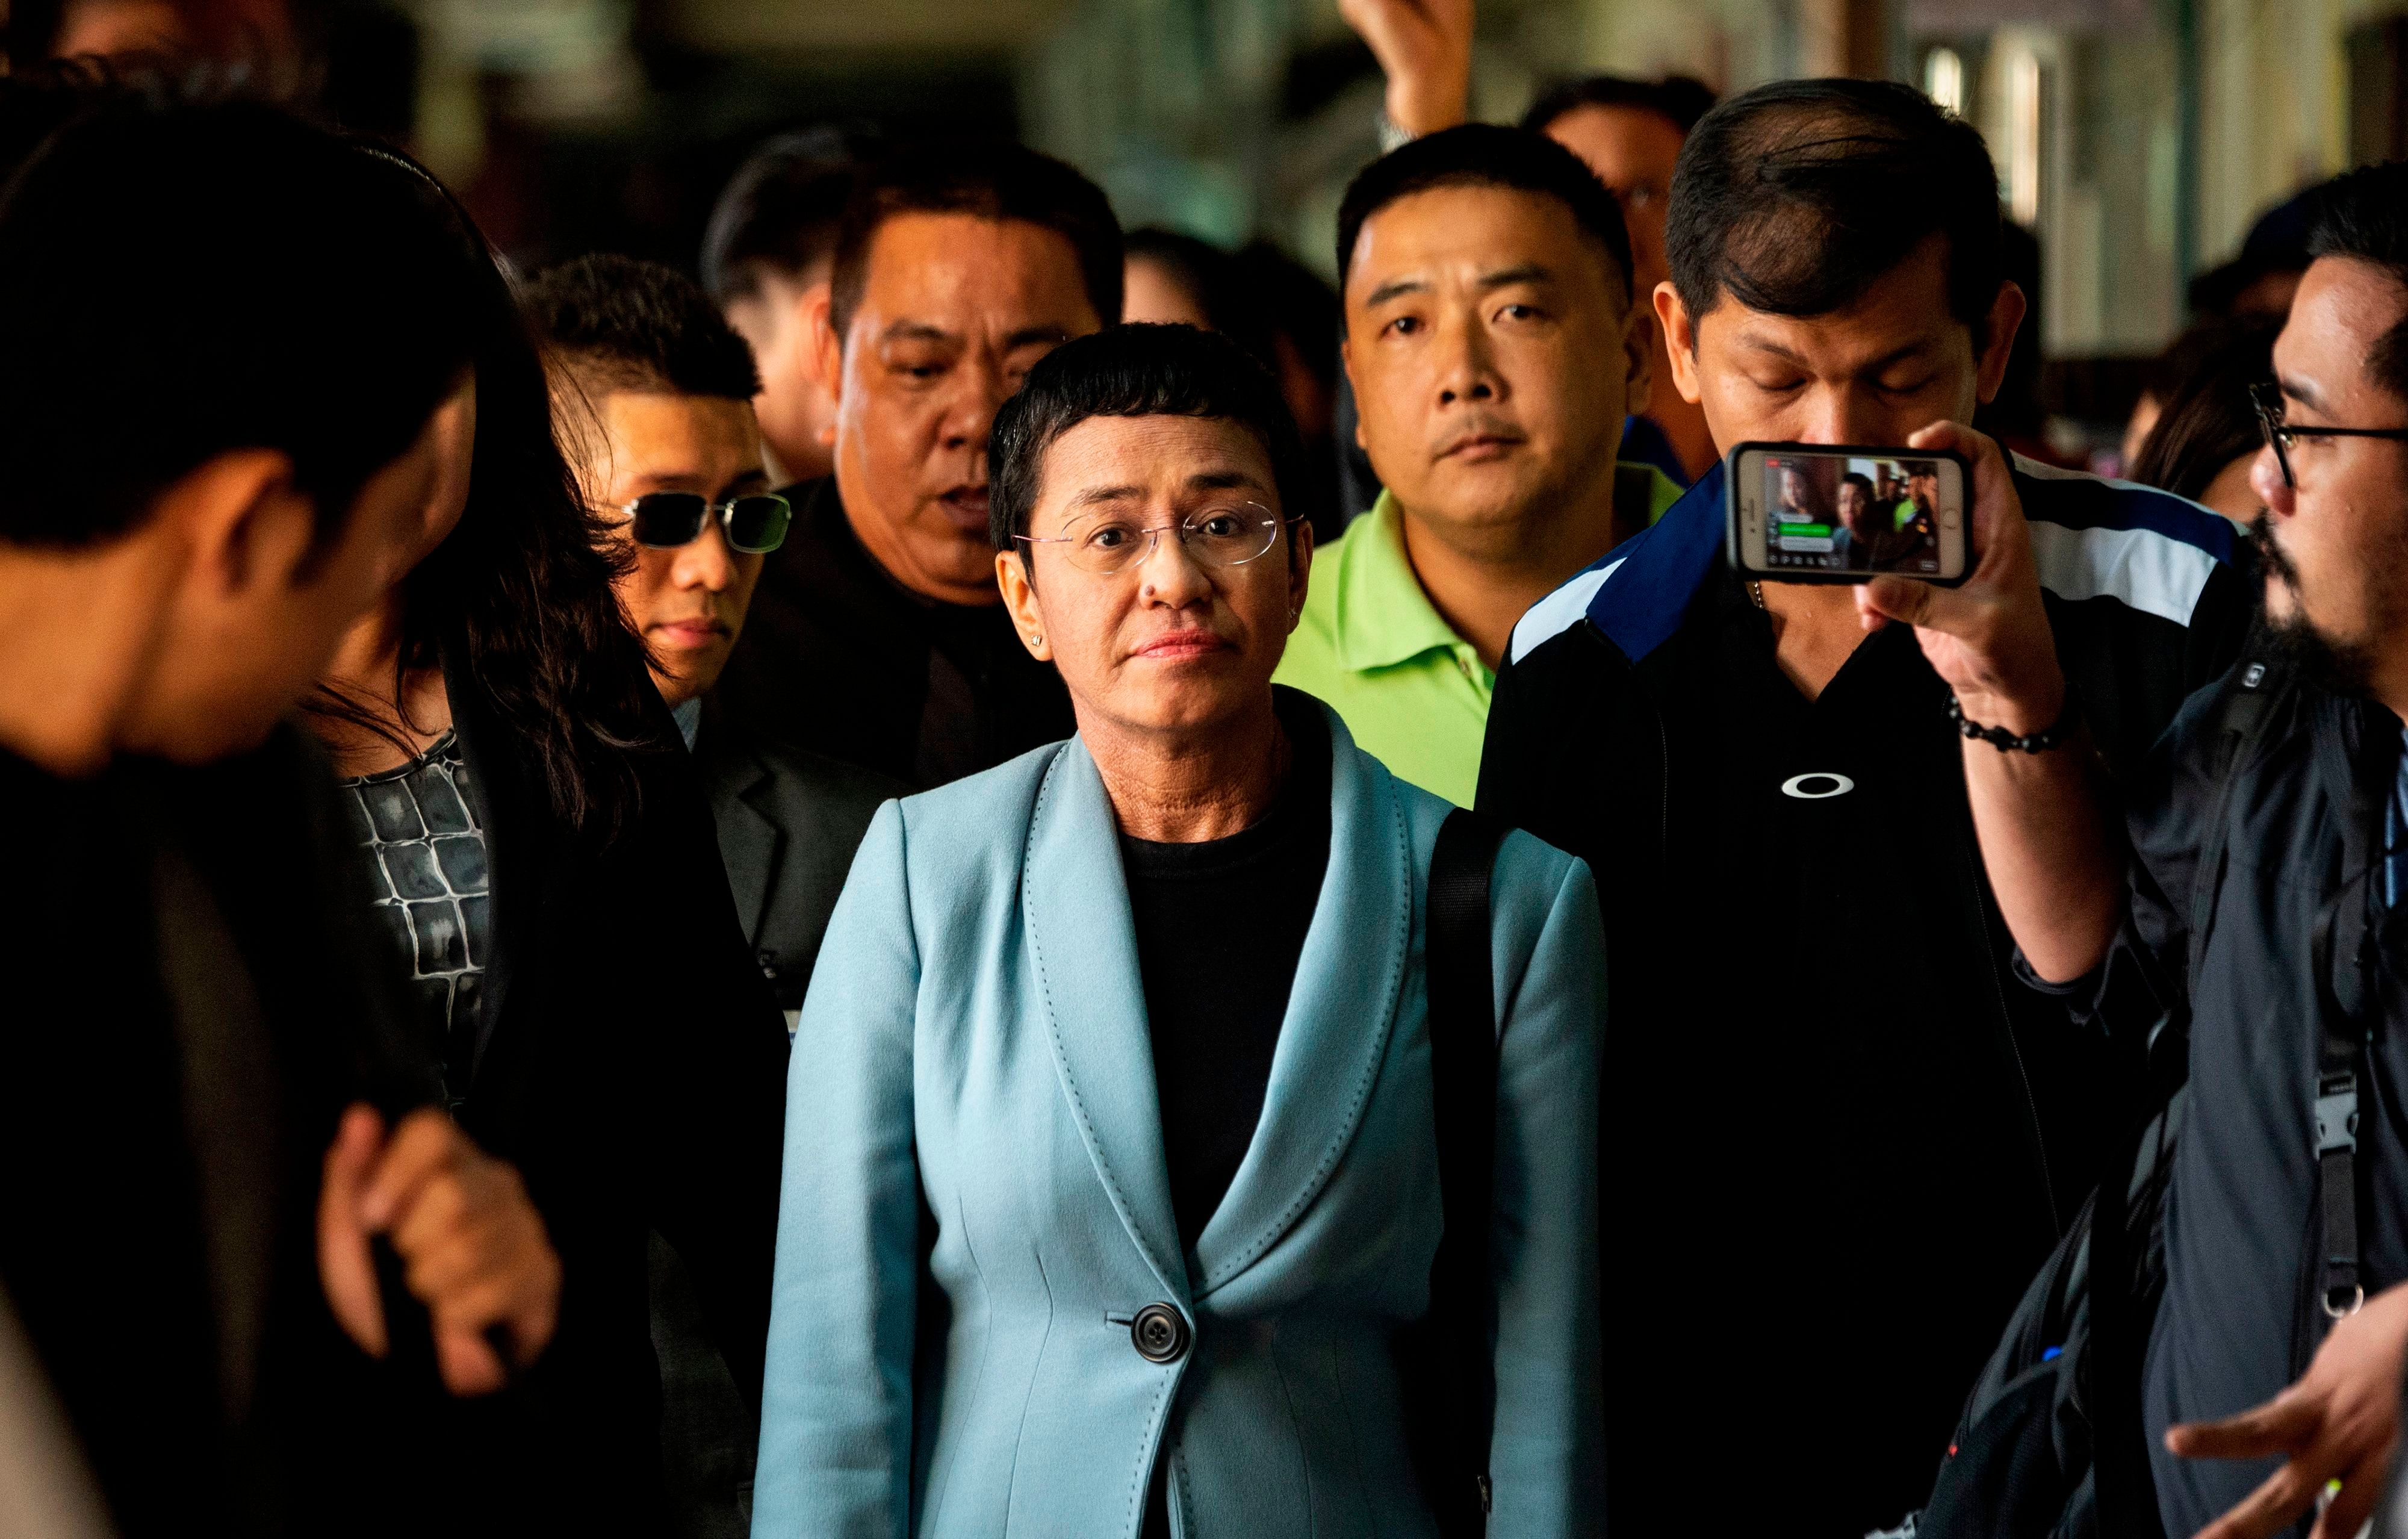 Philippine journalist Maria Ressa (C) arrives at a regional trial court in Manila to post bail on February 14, 2019. - Ressa was freed on bail on February 14 following an arrest that sparked international censure and allegations she is being targeted over her news site's criticism of President Rodrigo Duterte. (Photo by Noel CELIS / AFP)        (Photo credit should read NOEL CELIS/AFP/Getty Images)